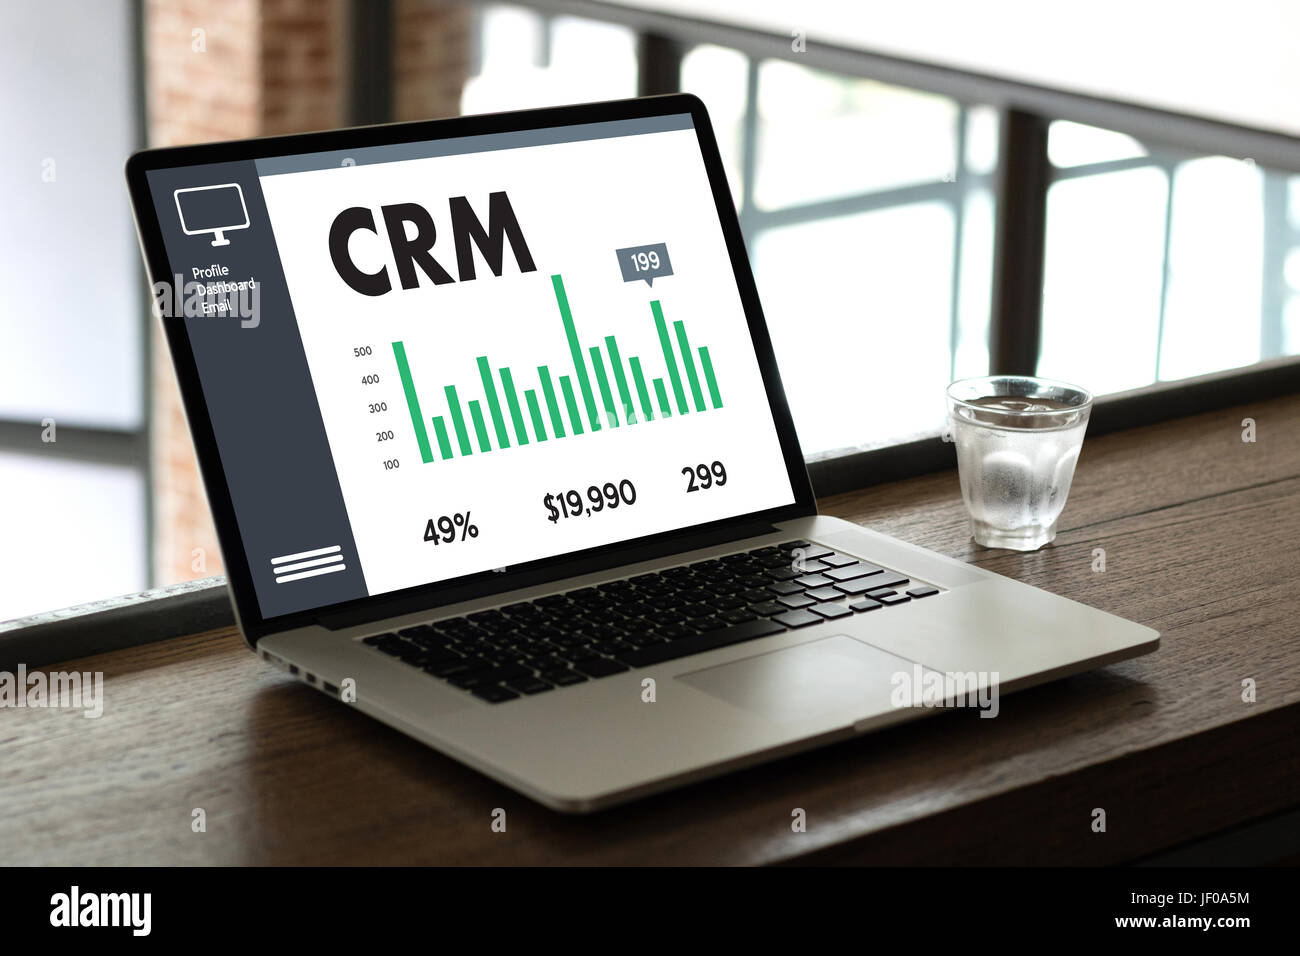 Business Customer CRM Management Analysis Service Concept , Customer relationship management - Stock Image